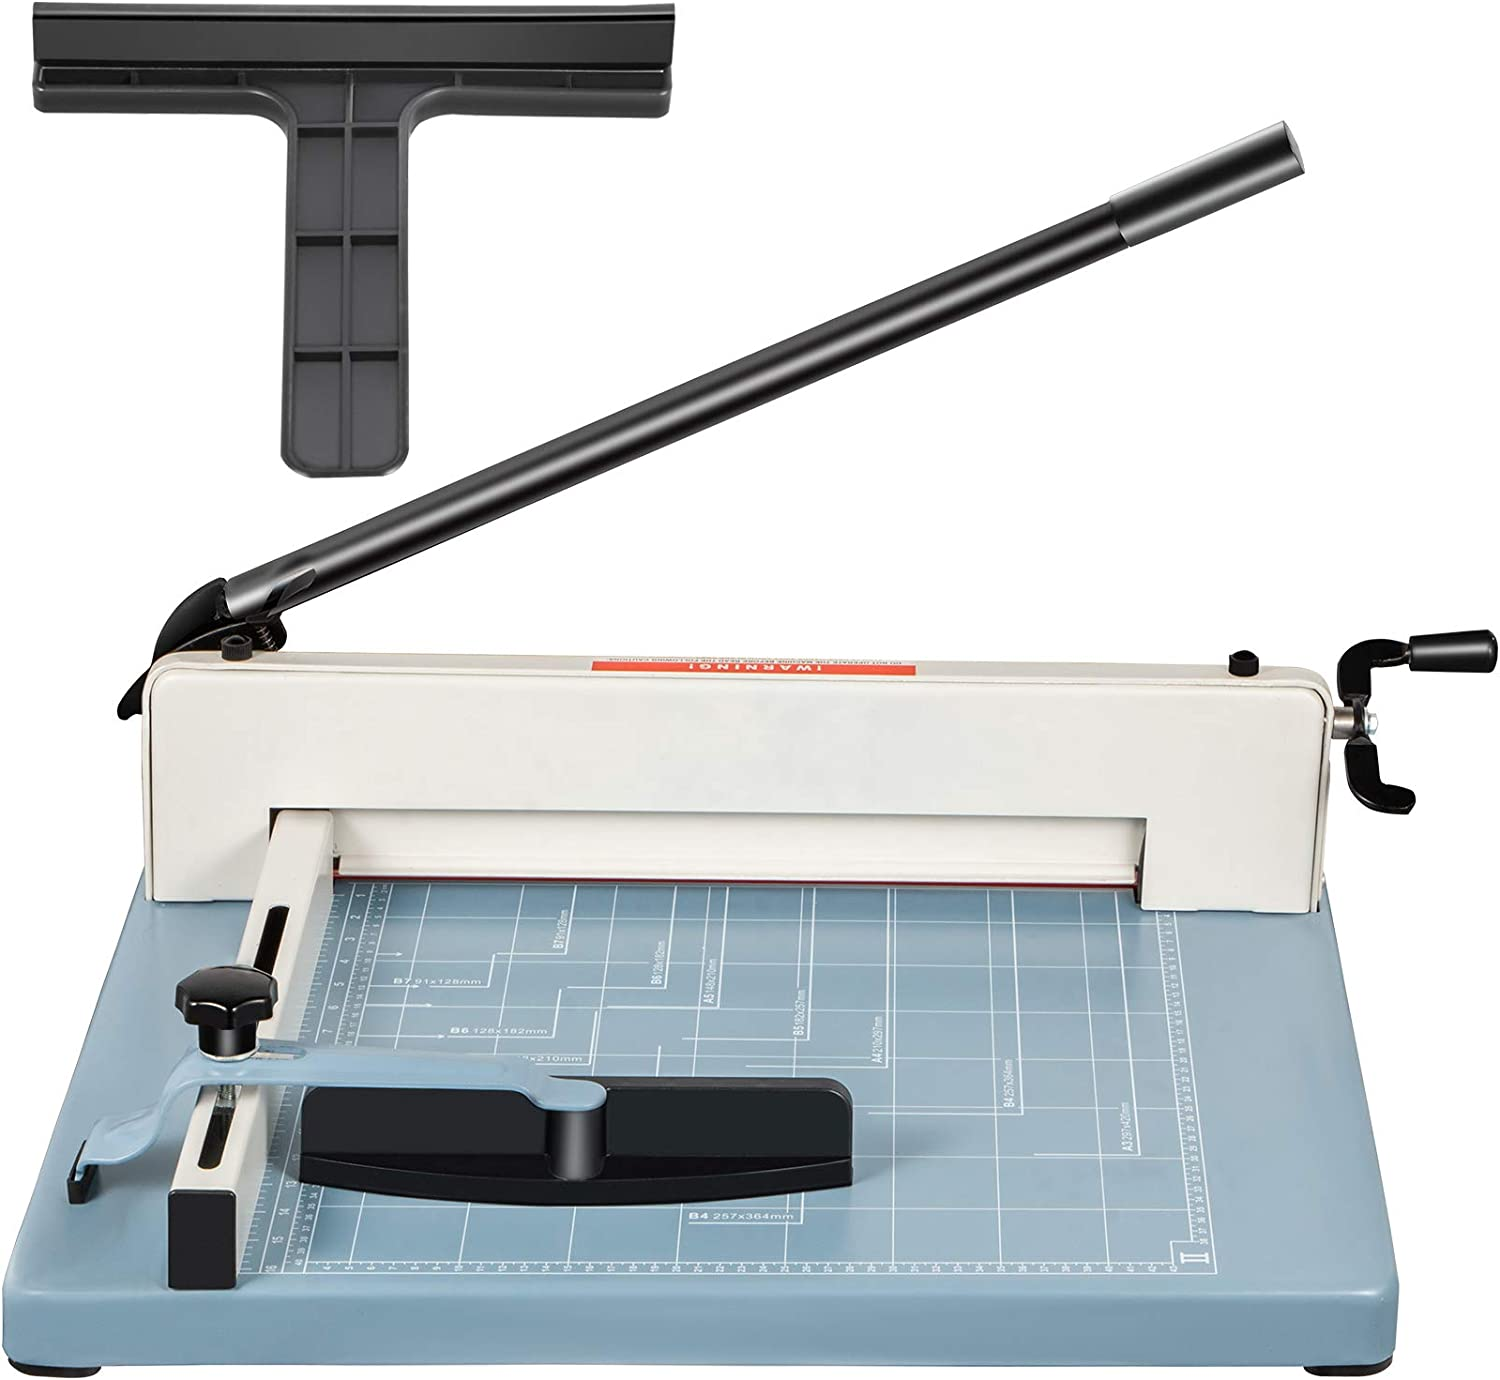 VEVOR Industrial Paper Cutter A4 Los Angeles Mall Heavy Inch Large discharge sale Duty 12